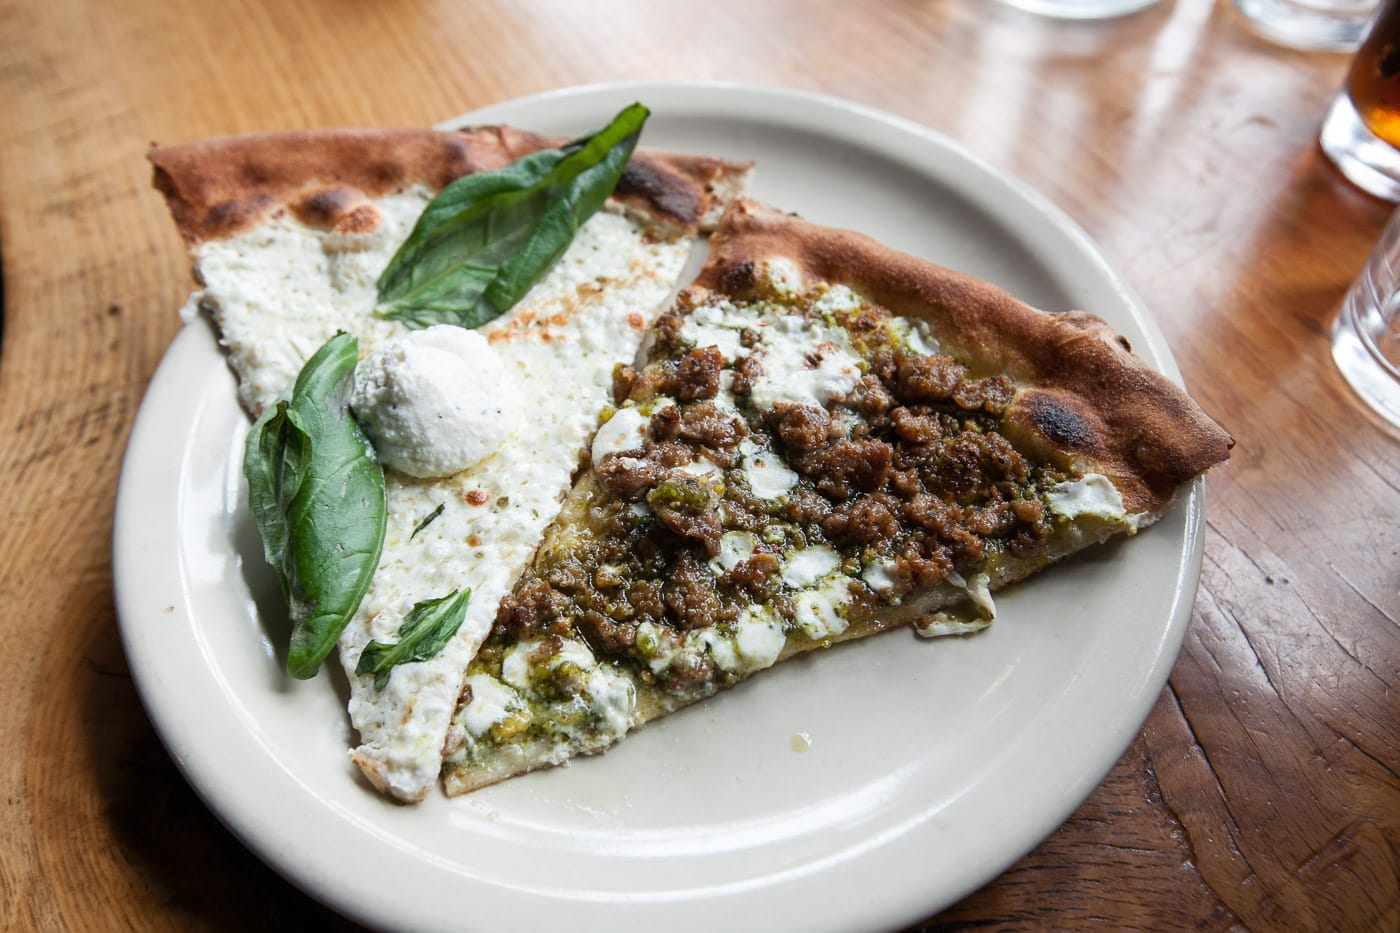 Pizza tour of Chicago with Chicago Pizza Tours - White ​Pizza and Pistachio ​Pesto ​pizza at Coalfire Pizza in Chicago